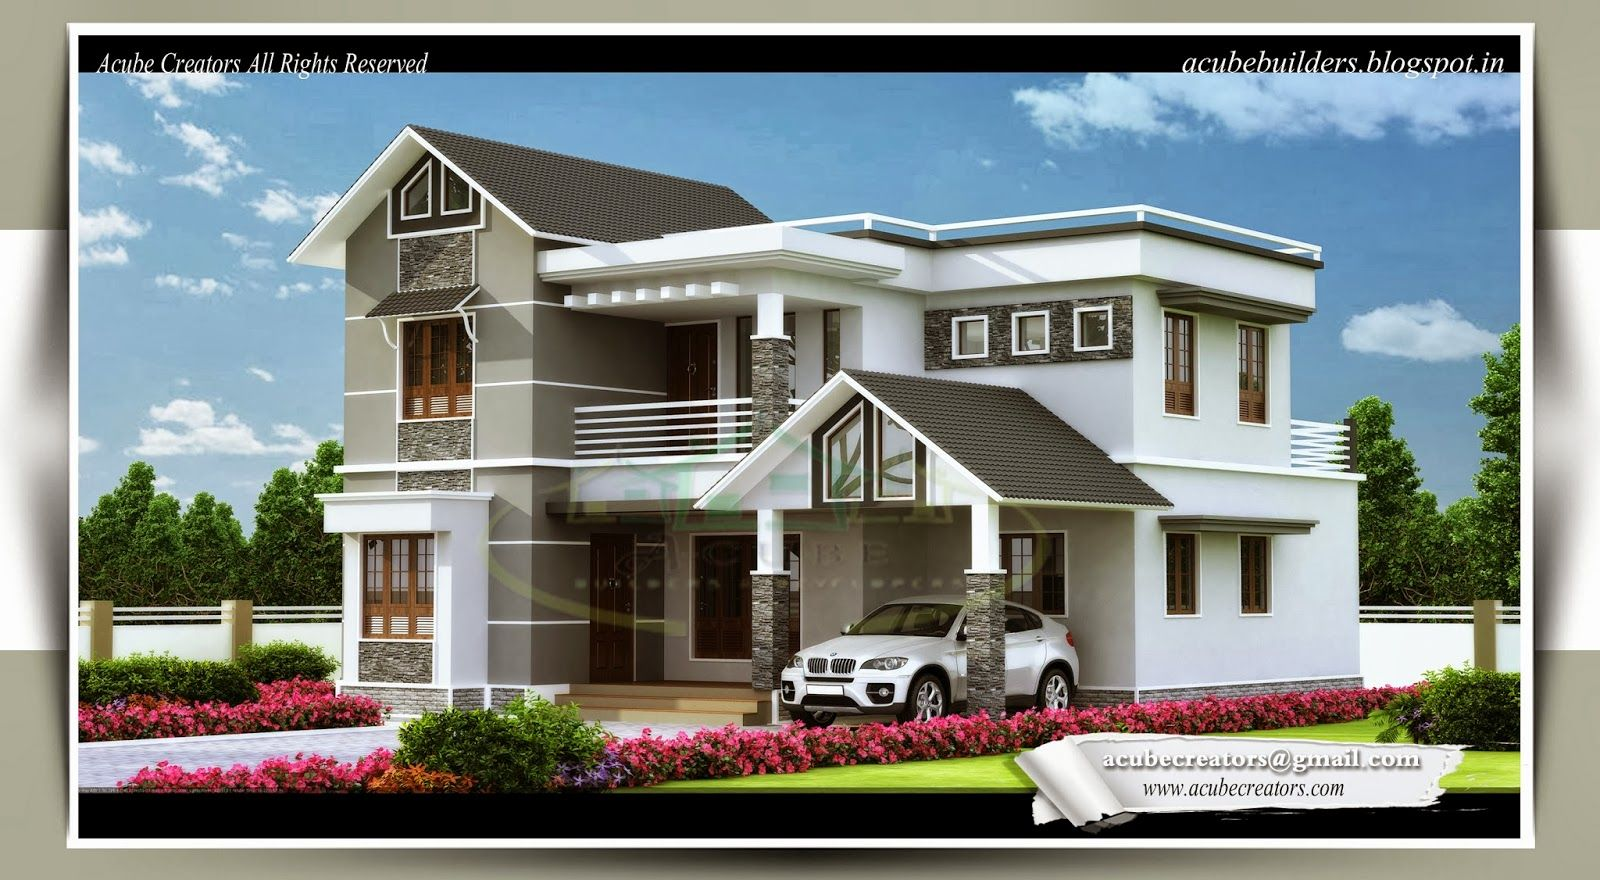 Home Design Pictures Glamorous Home Design Gallery Fresh Ideas Kerala Home Design Photos  Home . Review